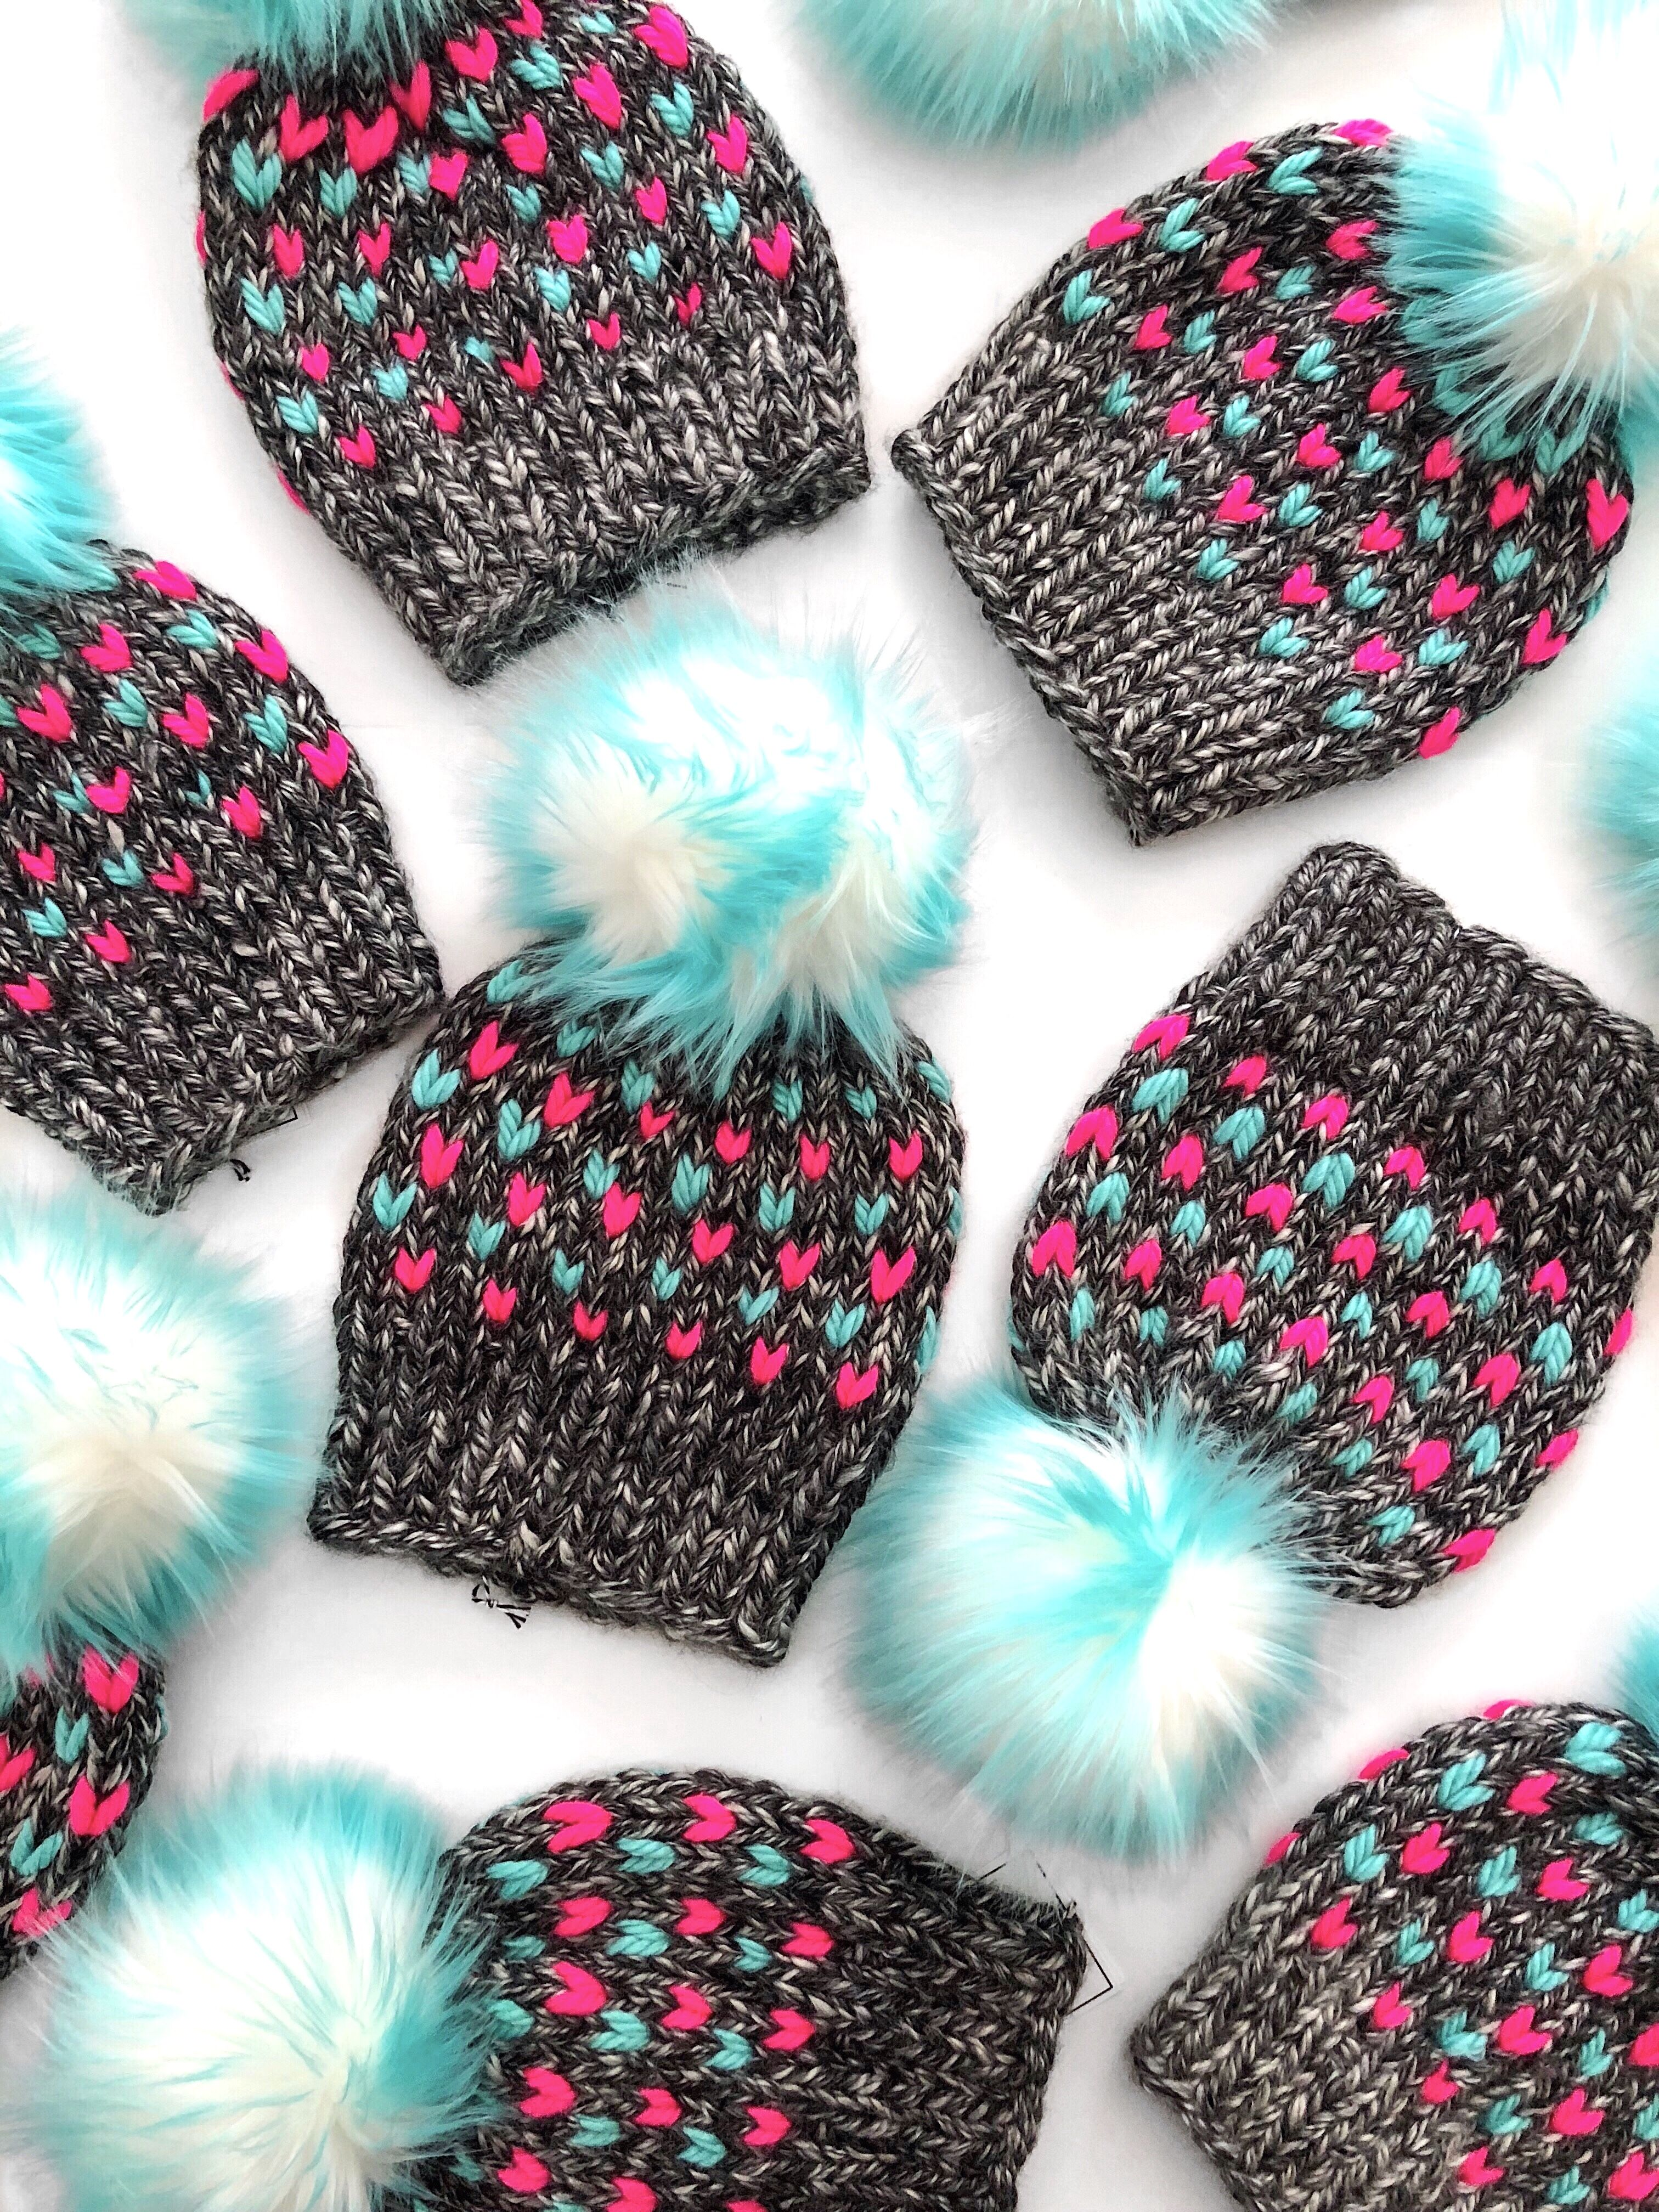 a2a23e96 Aqua and Neon Pink knitted faux fur beanie. Toddler girl knit beanie.  Women's knit hat. Winter style. Fall fashion. Colorful hat.